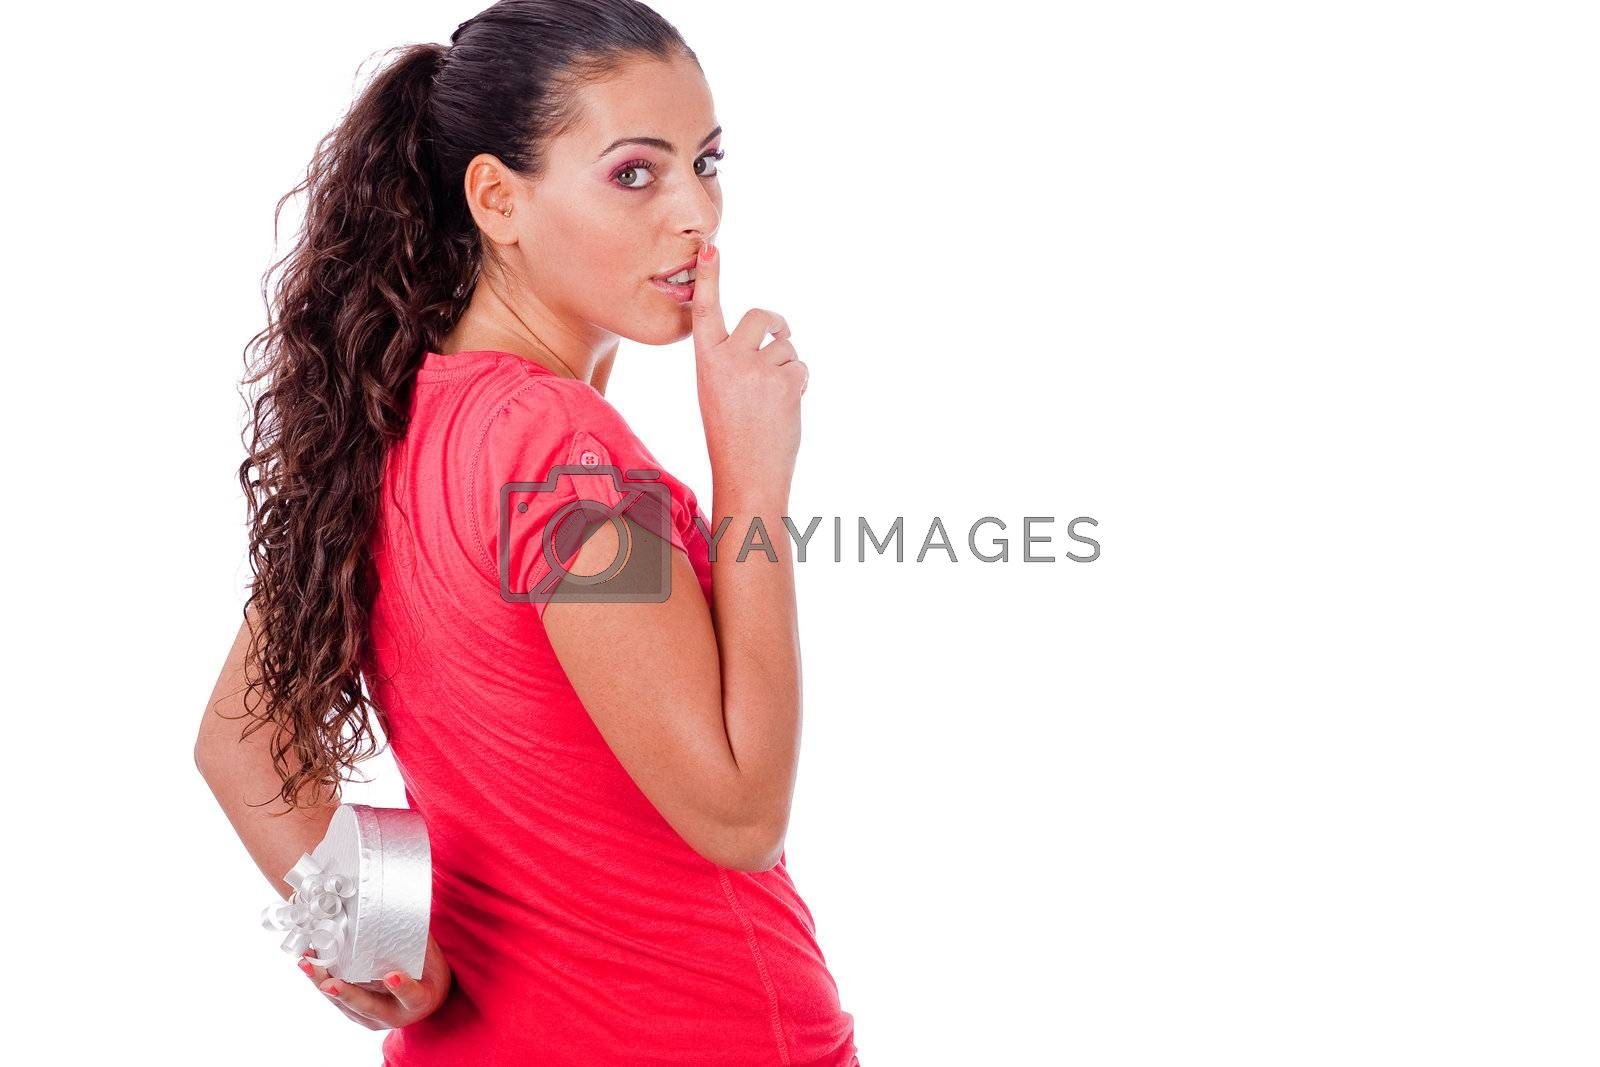 Cute girl hides a heart symbol on her back on isolated white background